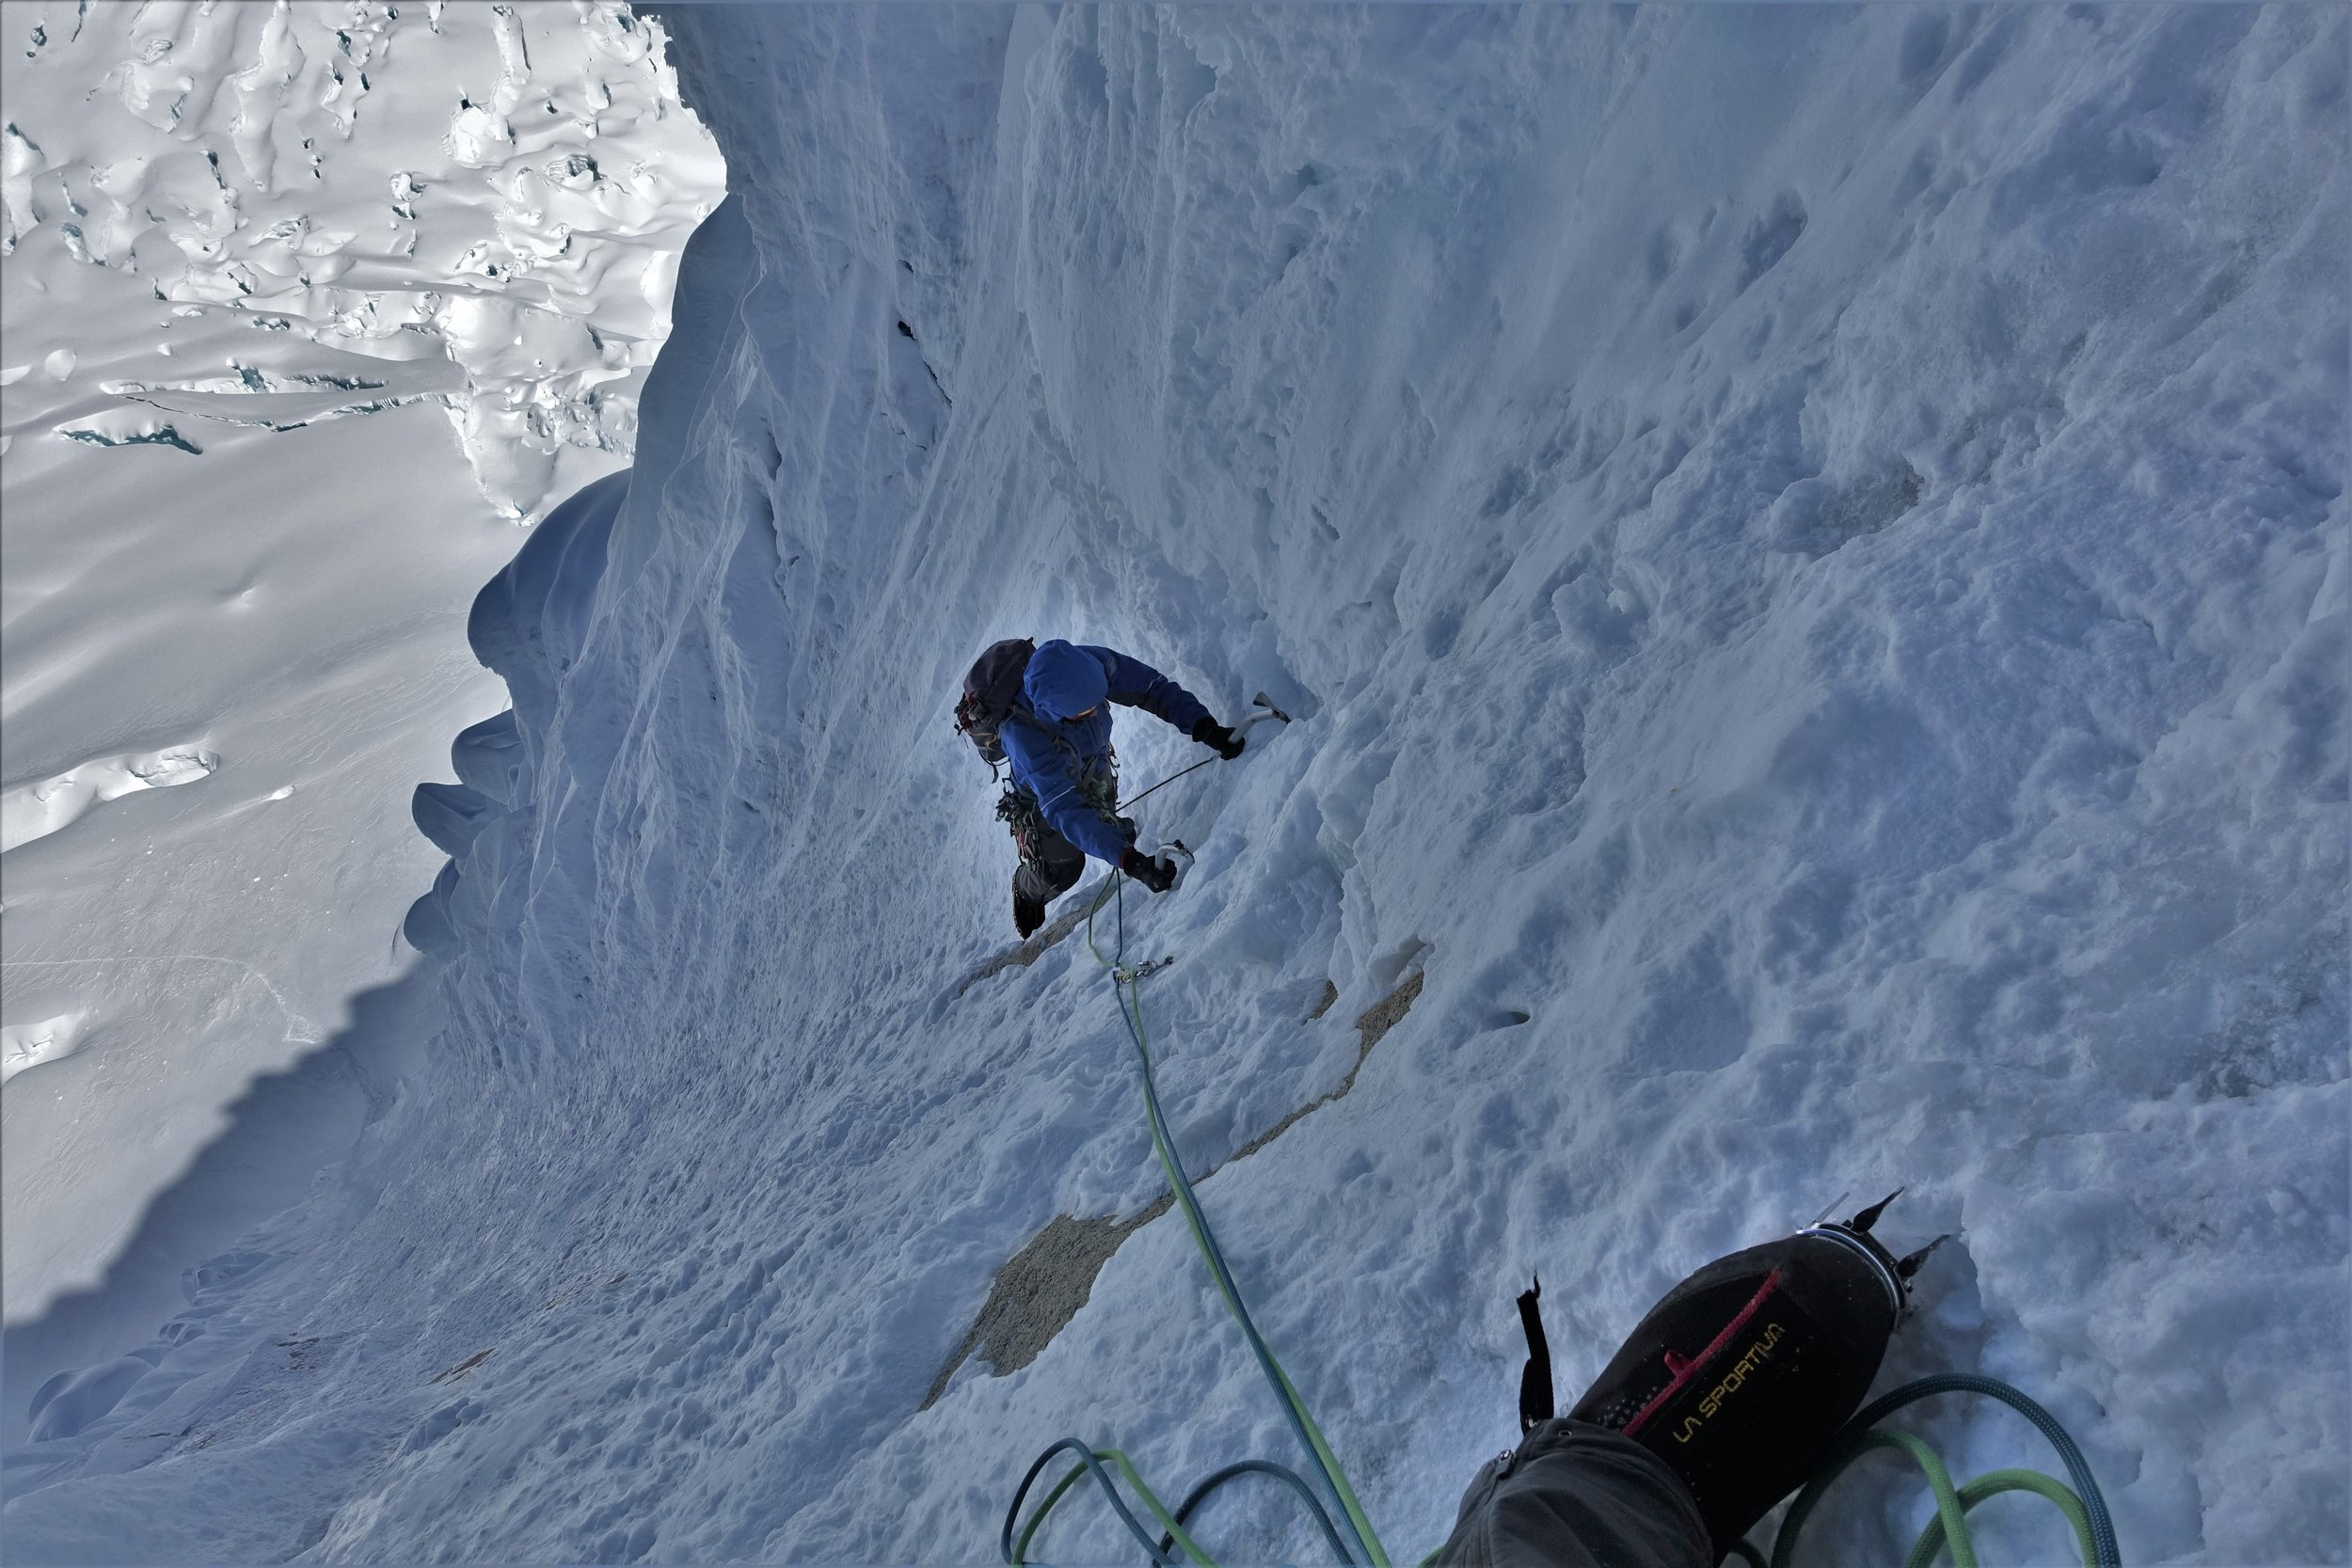 Andrew climbing the French Direct route on Alpamayo almost two years on from the accident.